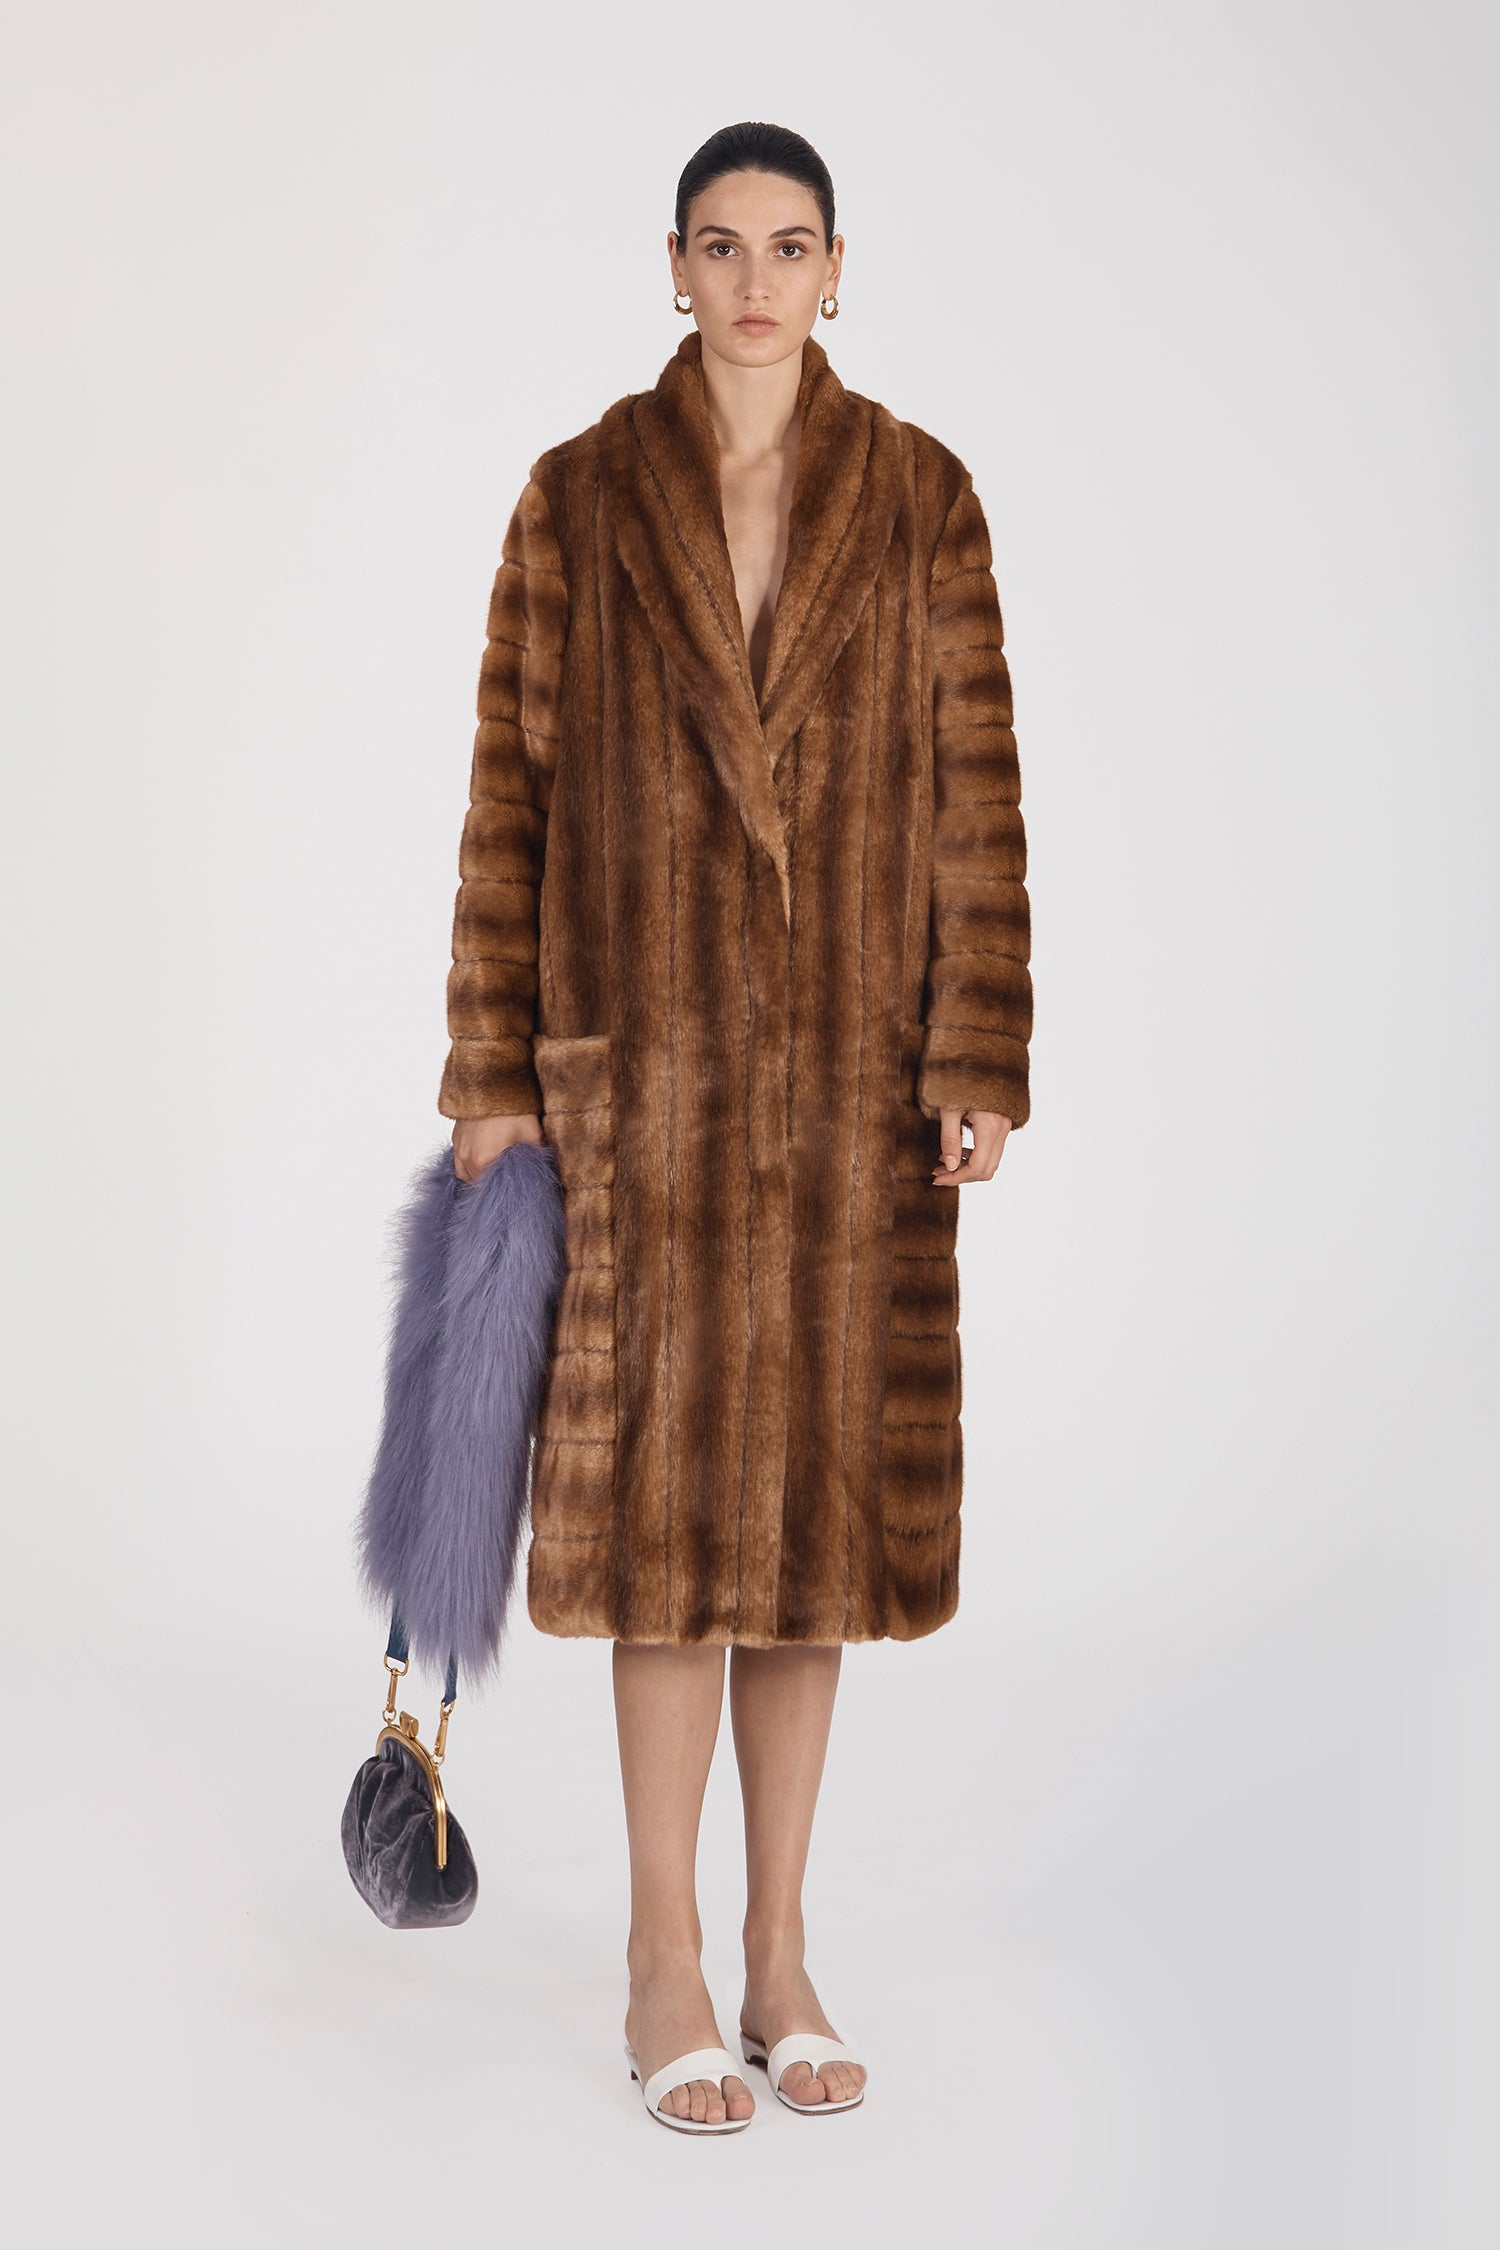 Marei1998's Timeless Echinacea Long Faux Fur Coat In Classic Brown Color. Featuring Oversized Silhouette And Wide Shawl Neckline. Investment Piece / Winter Essential. As Worn By The Model. Front View. Resort 2020 Collection - Furless Friendship.